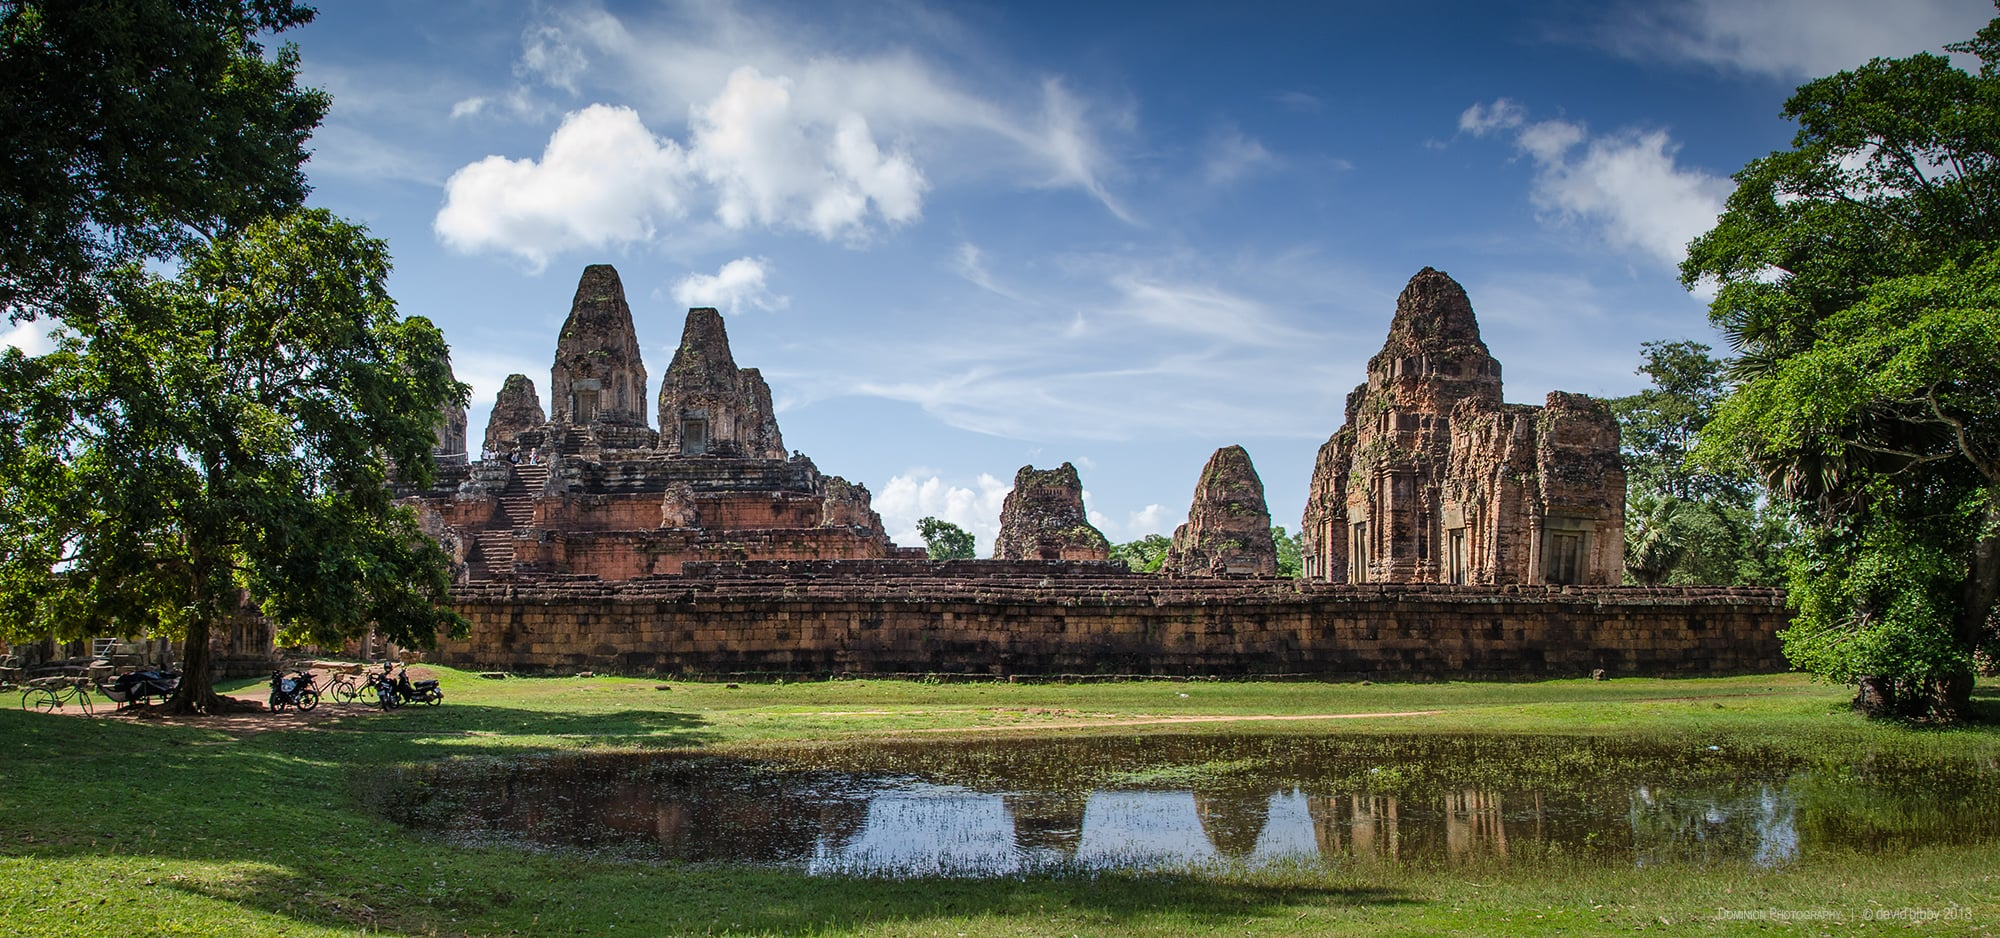 Pre Rup  - 10th century temple. Angkor, Siem Reap Province, Cambodia.